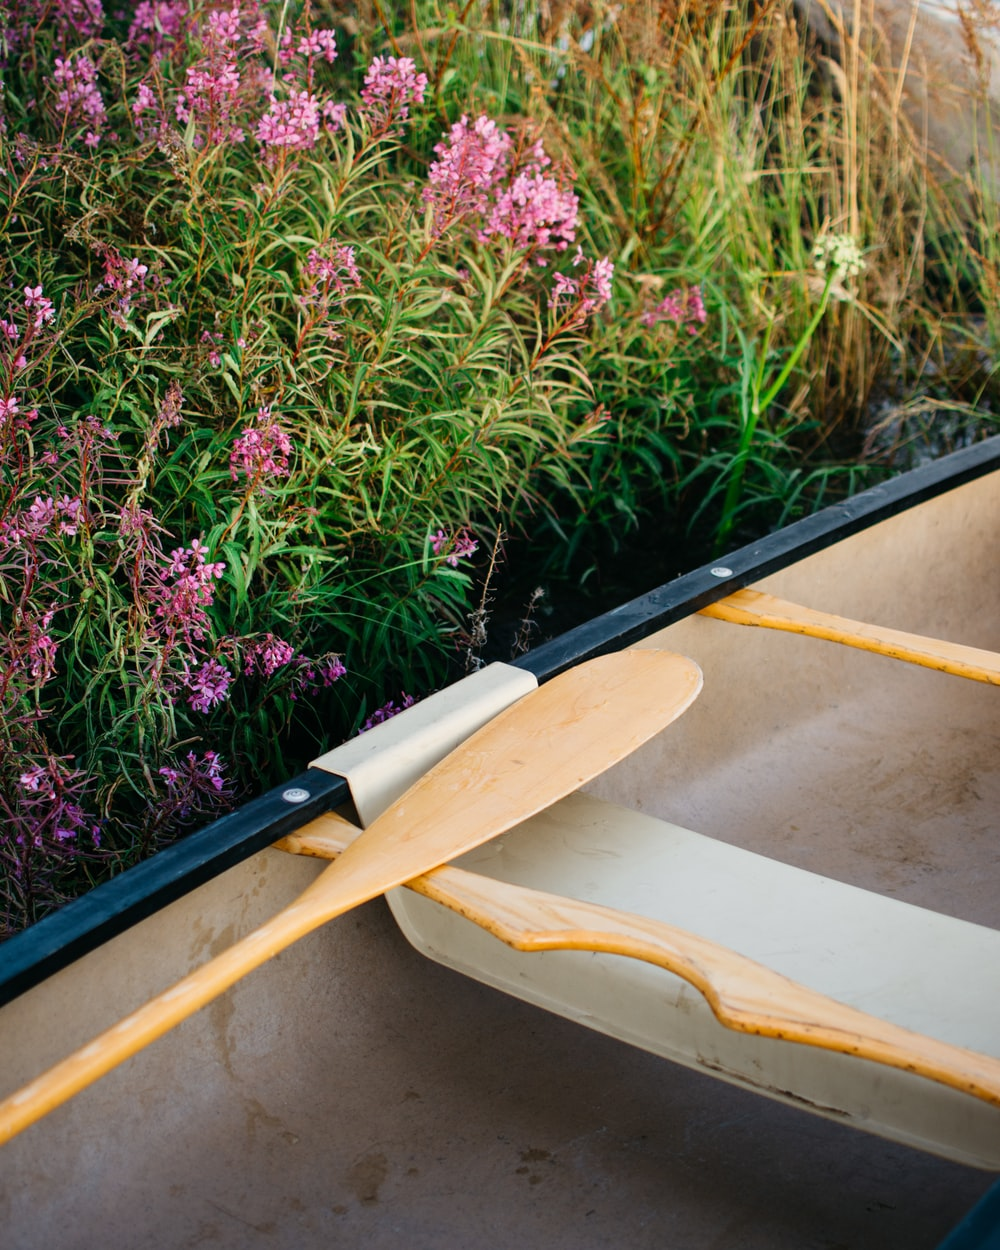 brown wooden boat on green and purple plants